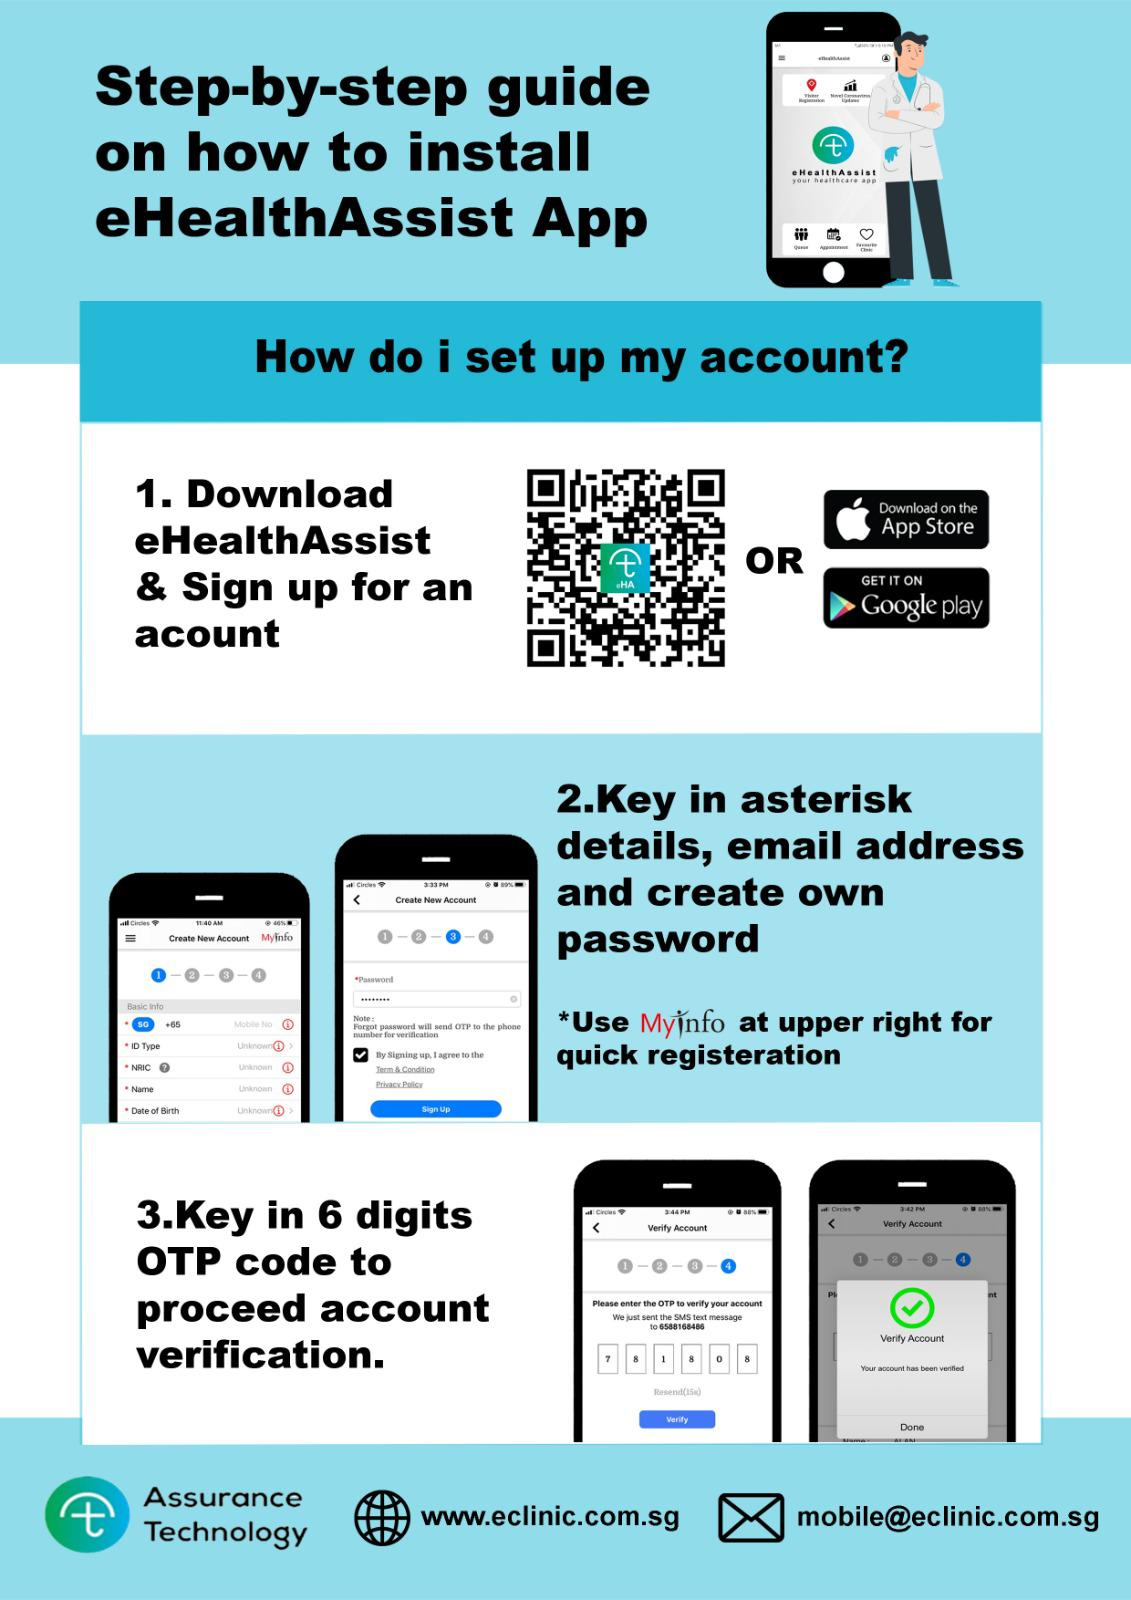 eHealthAssist App install guide